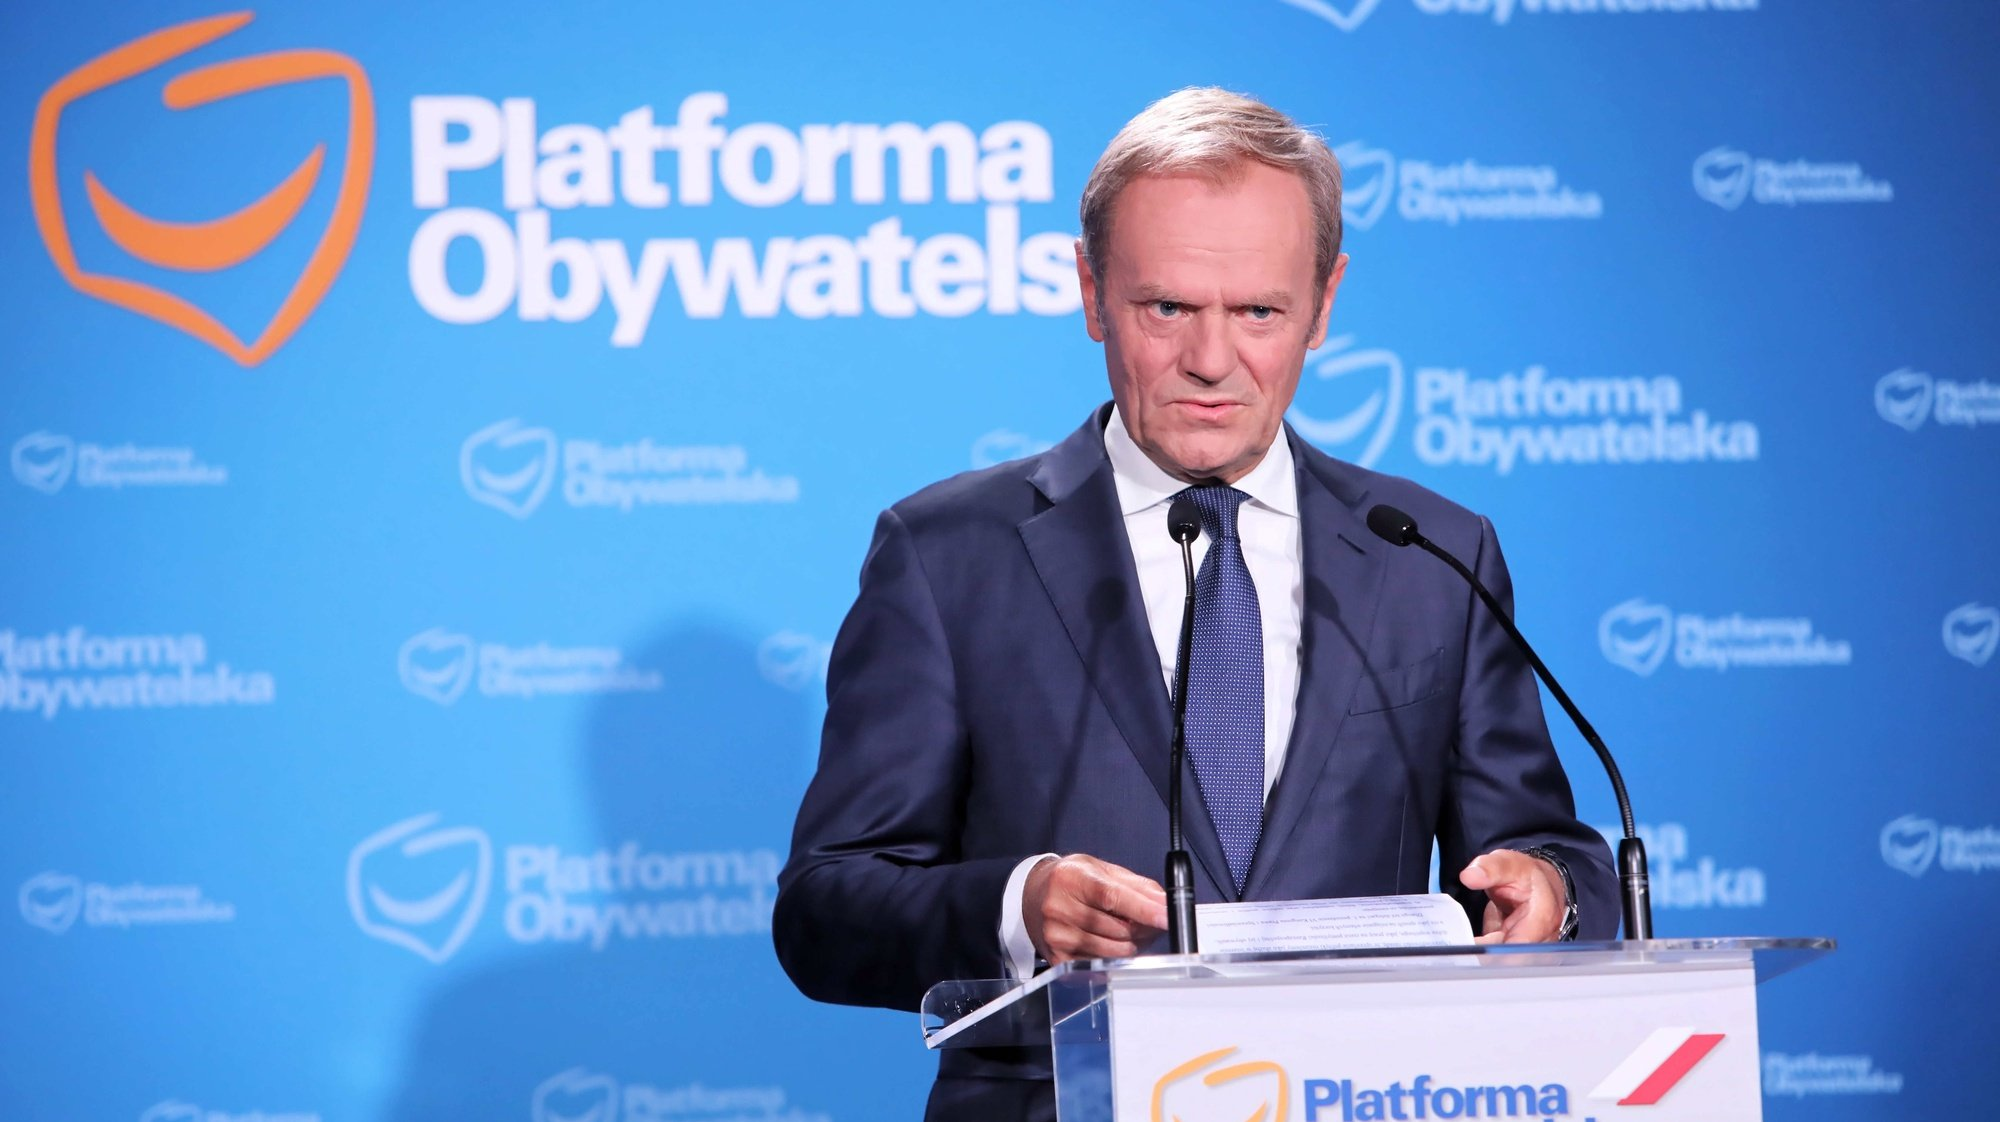 epa09322033 Leader of main opposition party Civic Platform Donald Tusk delivers a speech during a press conference in Warsaw, Poland, 04 July 2021. Tusk became leader of Civic Platform (PO), the main opposition party, following the resignation of Borys Budka on 03 July.  EPA/Wojciech Olkusnik POLAND OUT